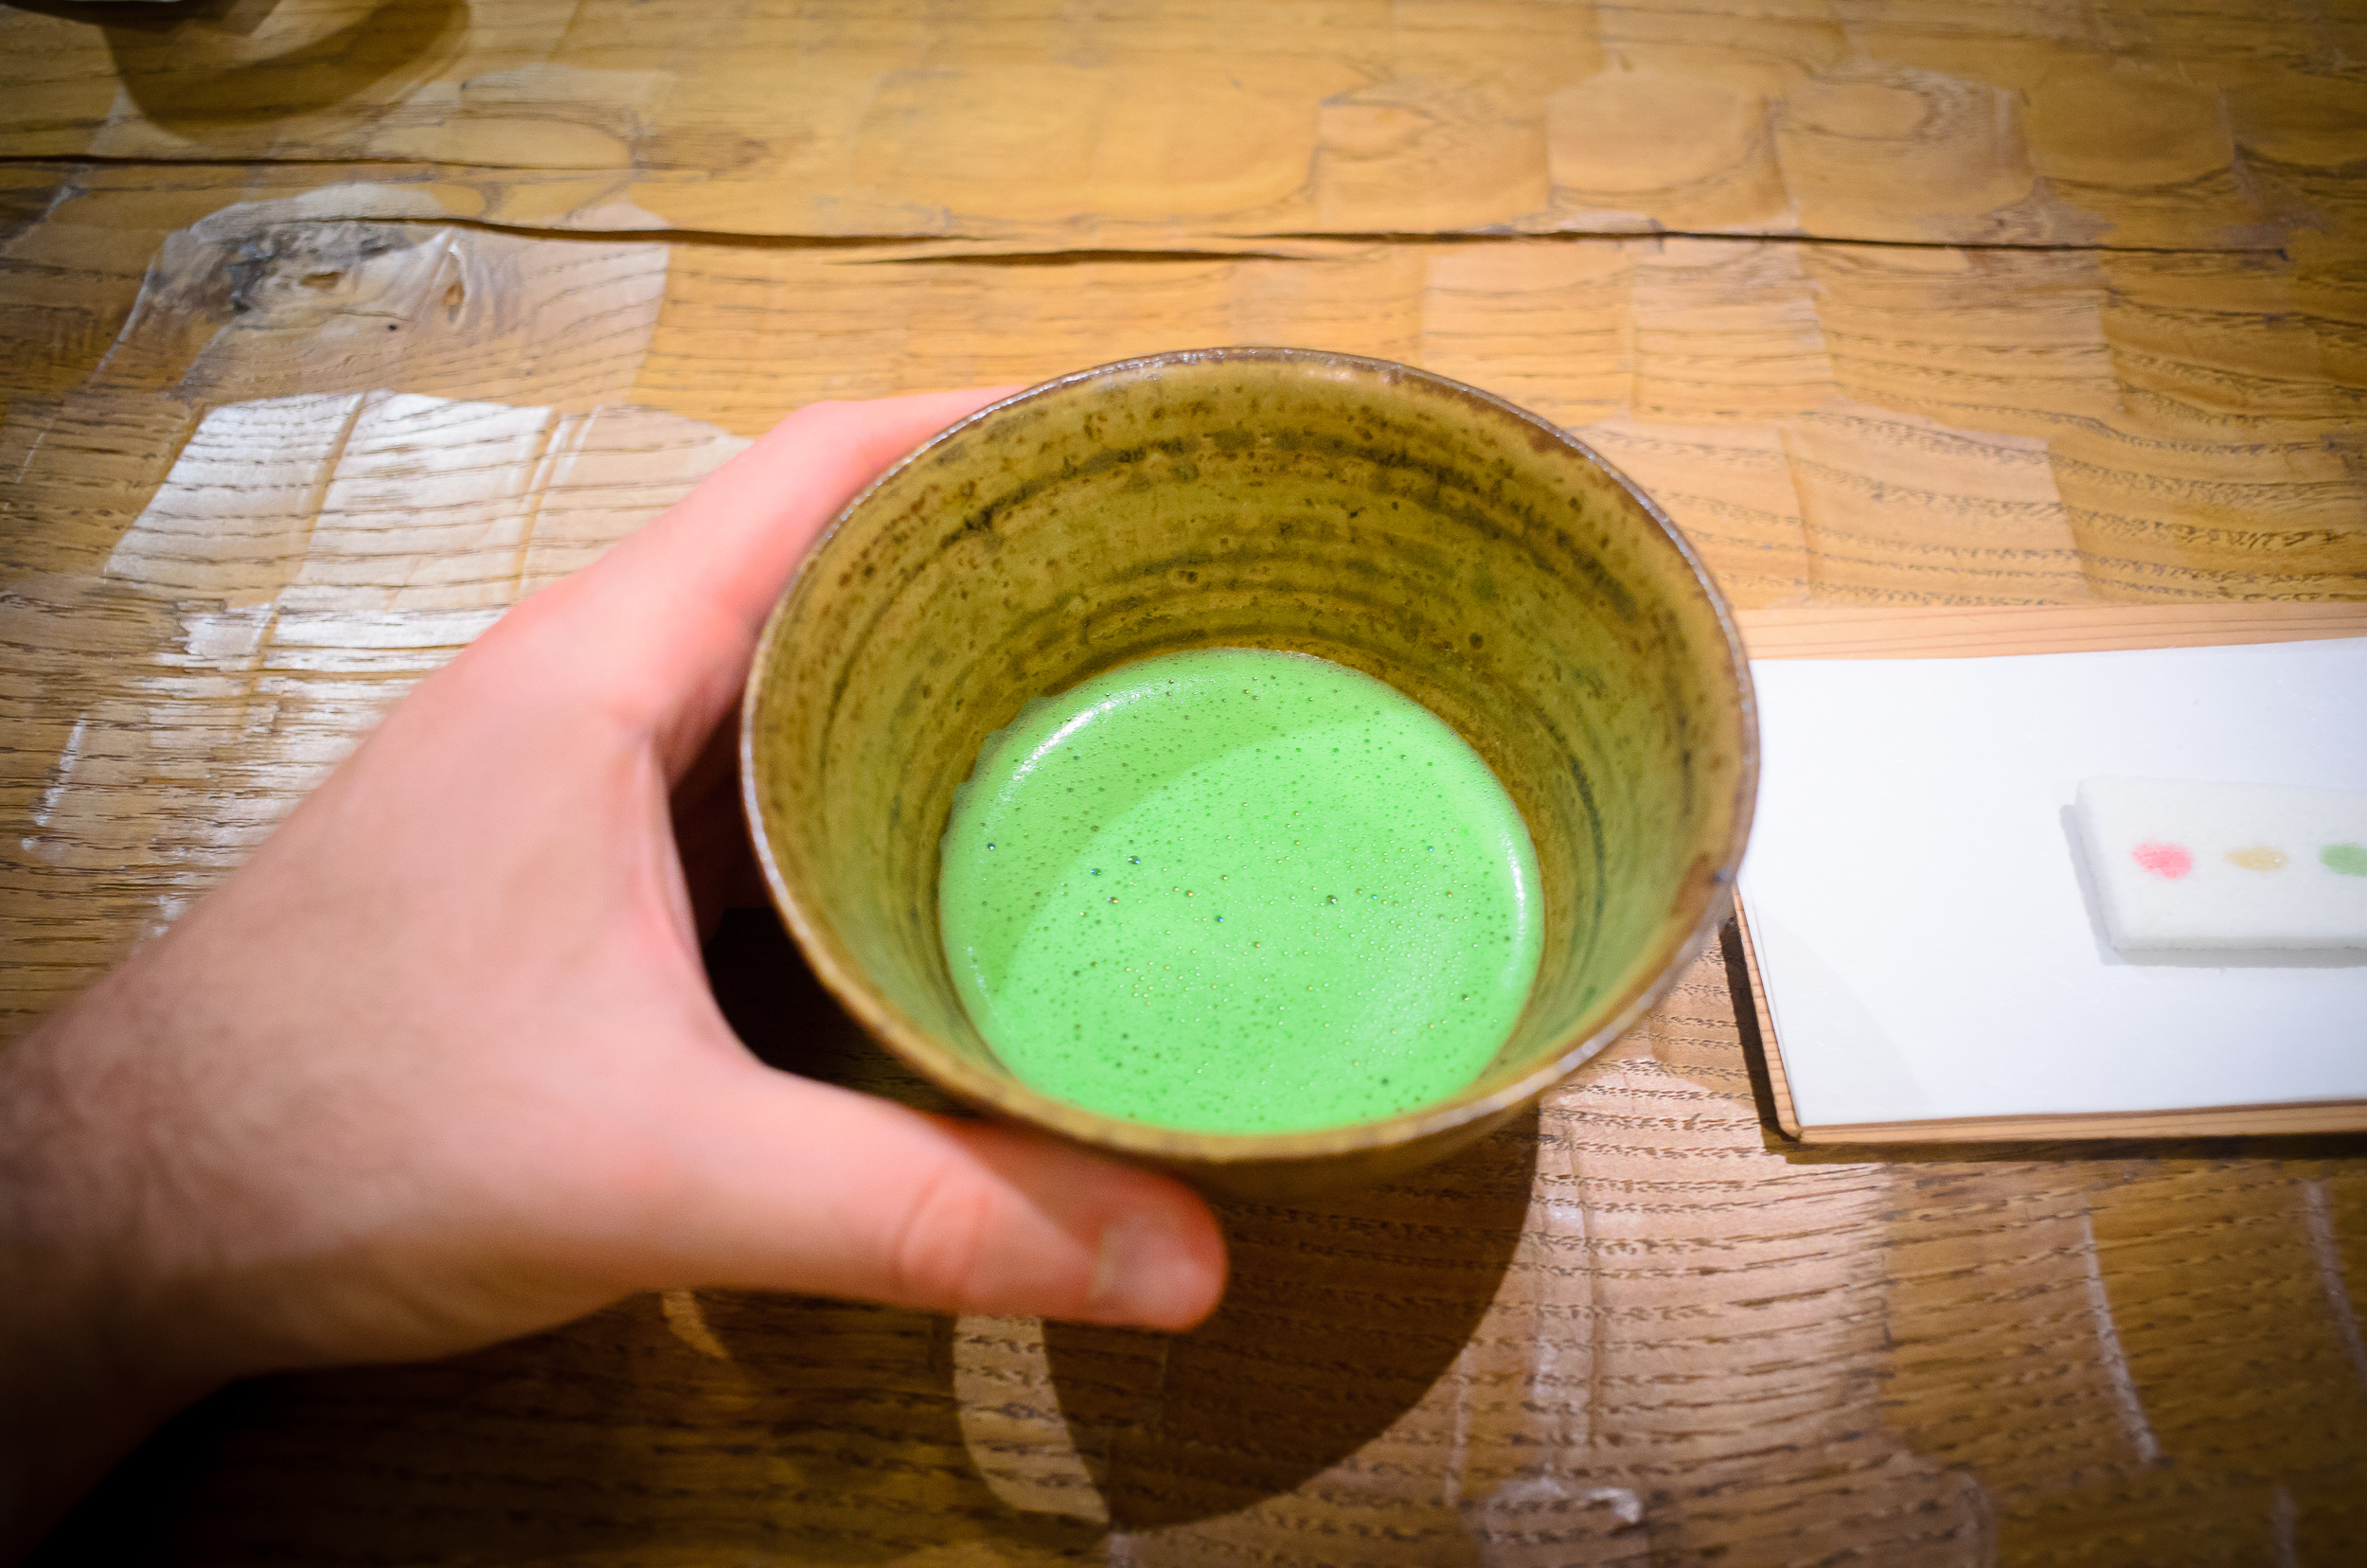 9th Course: Matcha green tea with candies by Kyoto's kagizen-yos